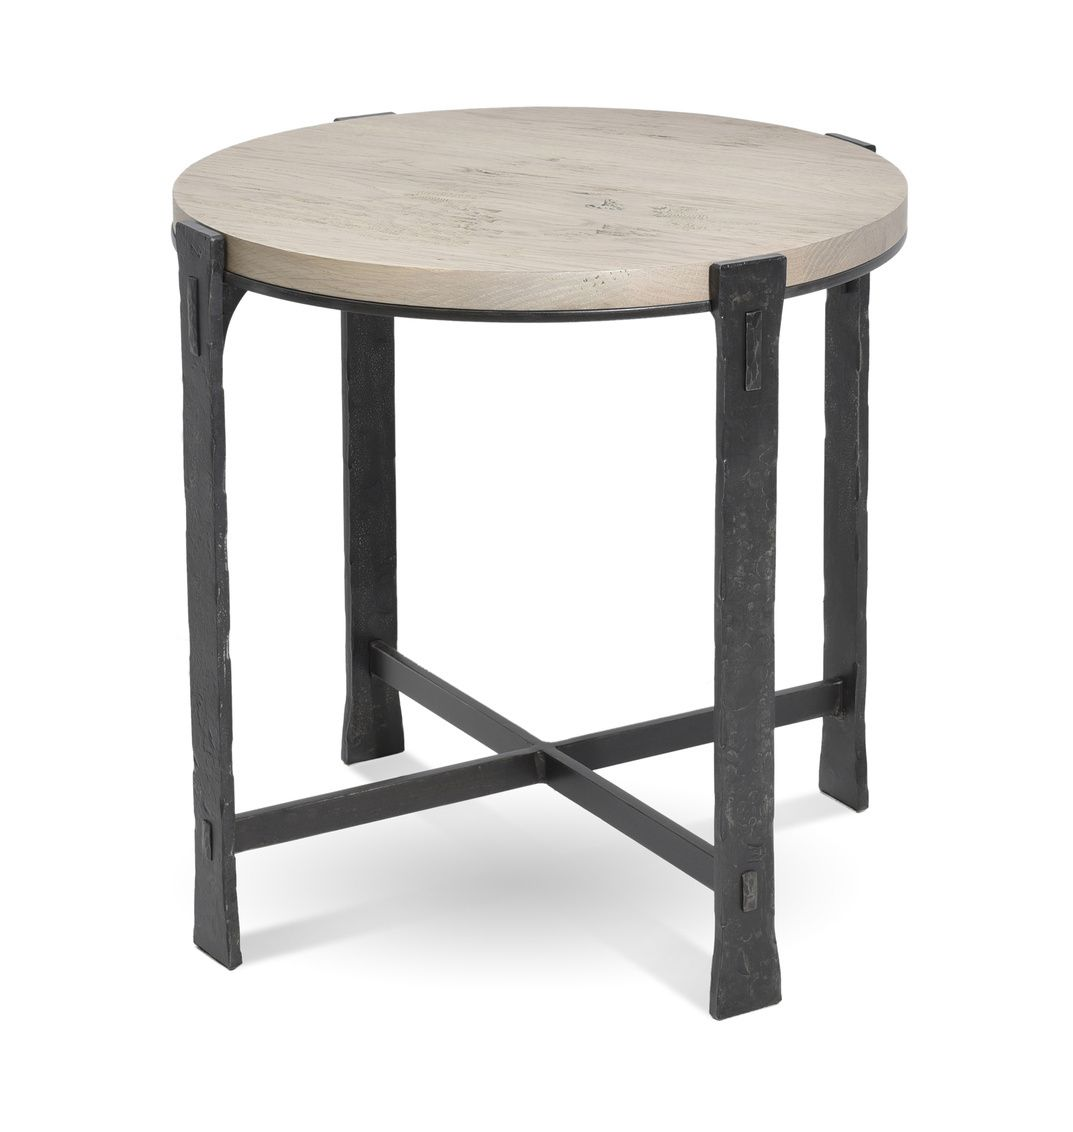 Charleston Forge Catalog Table Furniture End Tables [ 1132 x 1073 Pixel ]